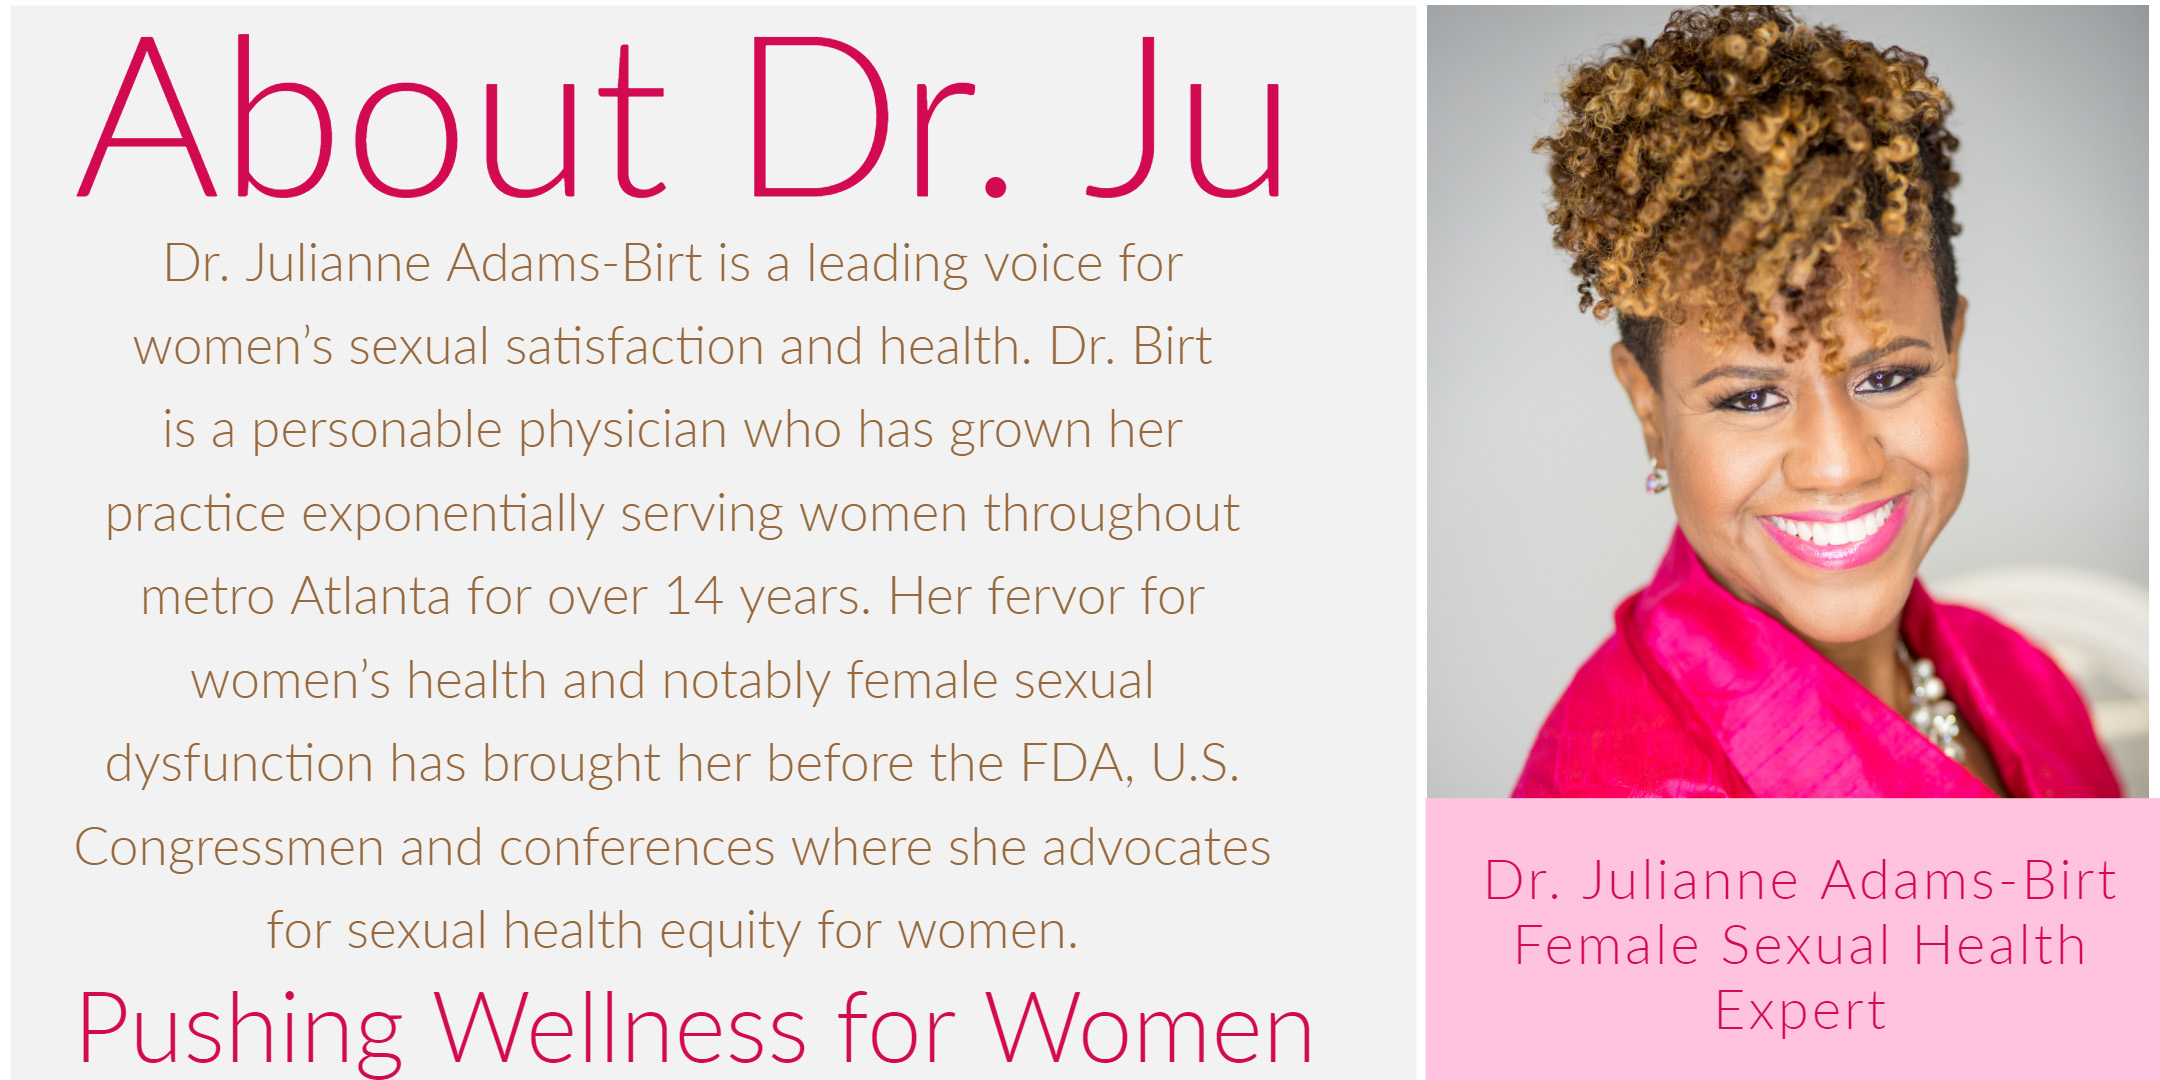 About Dr. Ju